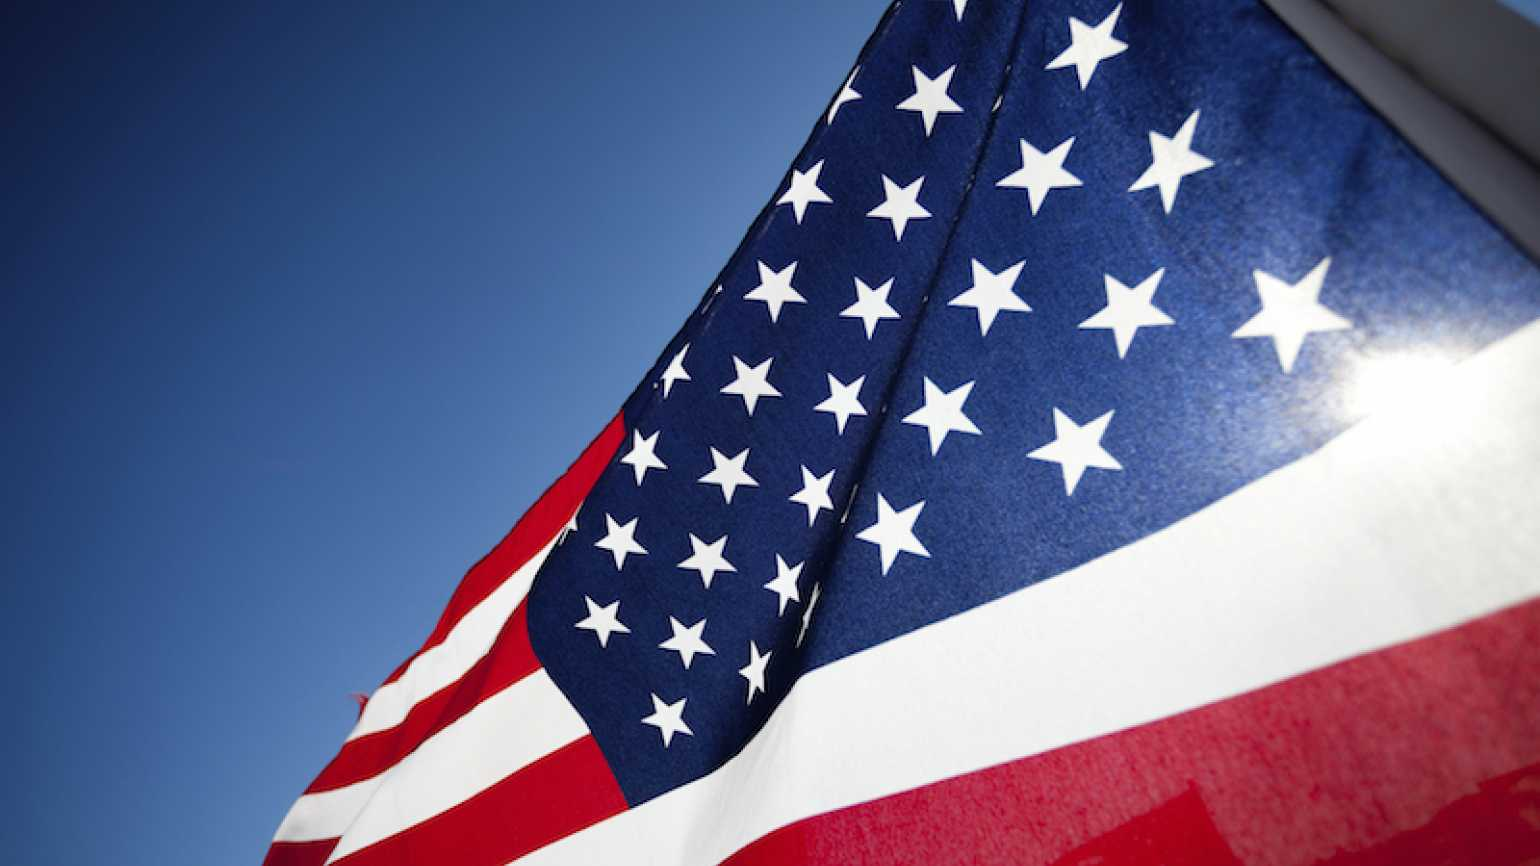 Honoring those who serve on Veterans Day. Photo by Miflippo, Thinkstock.